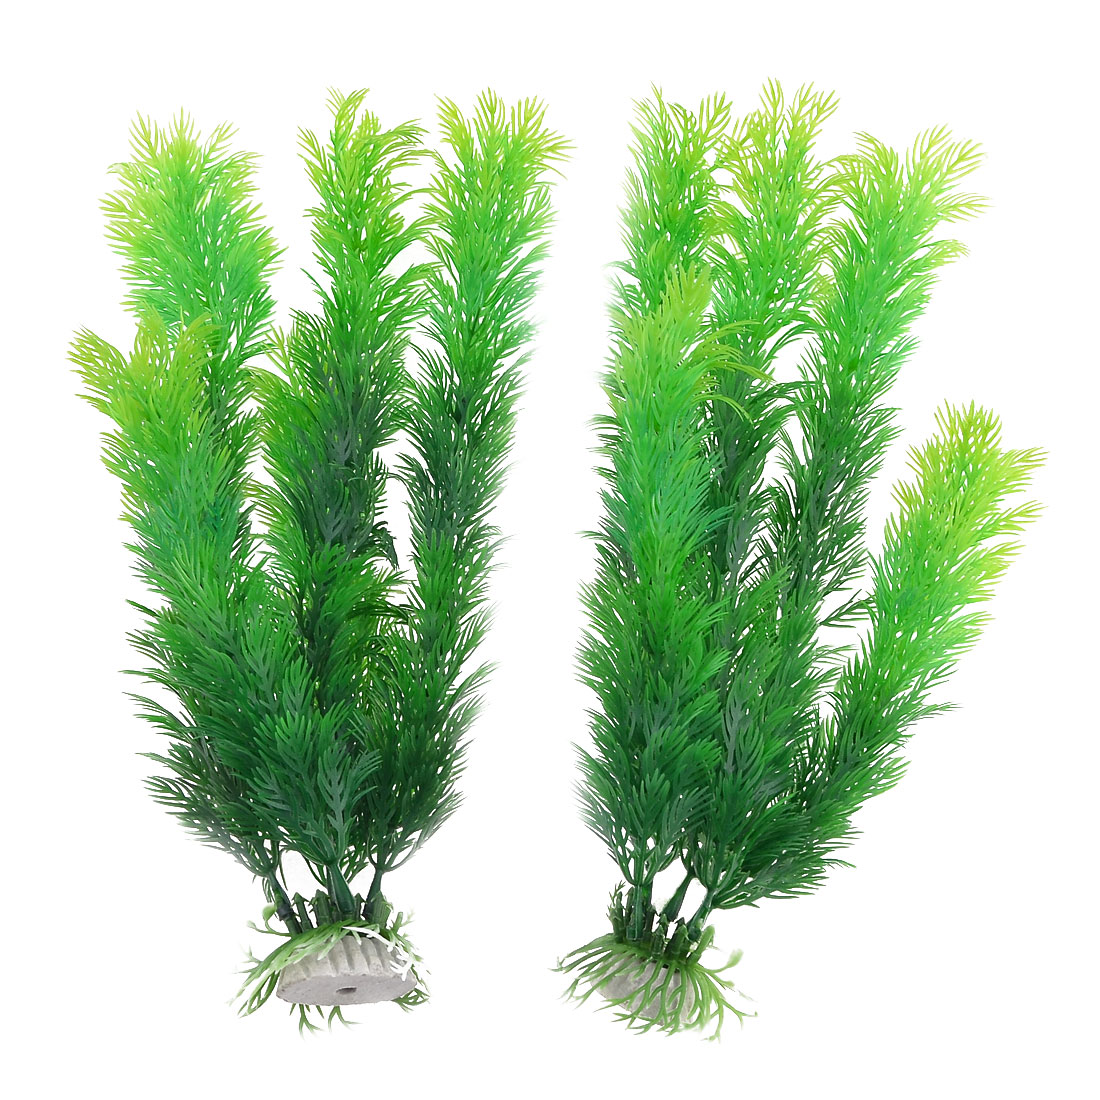 Pair Artifical Green Aquarium Water Plants Ornament for Fish Tank